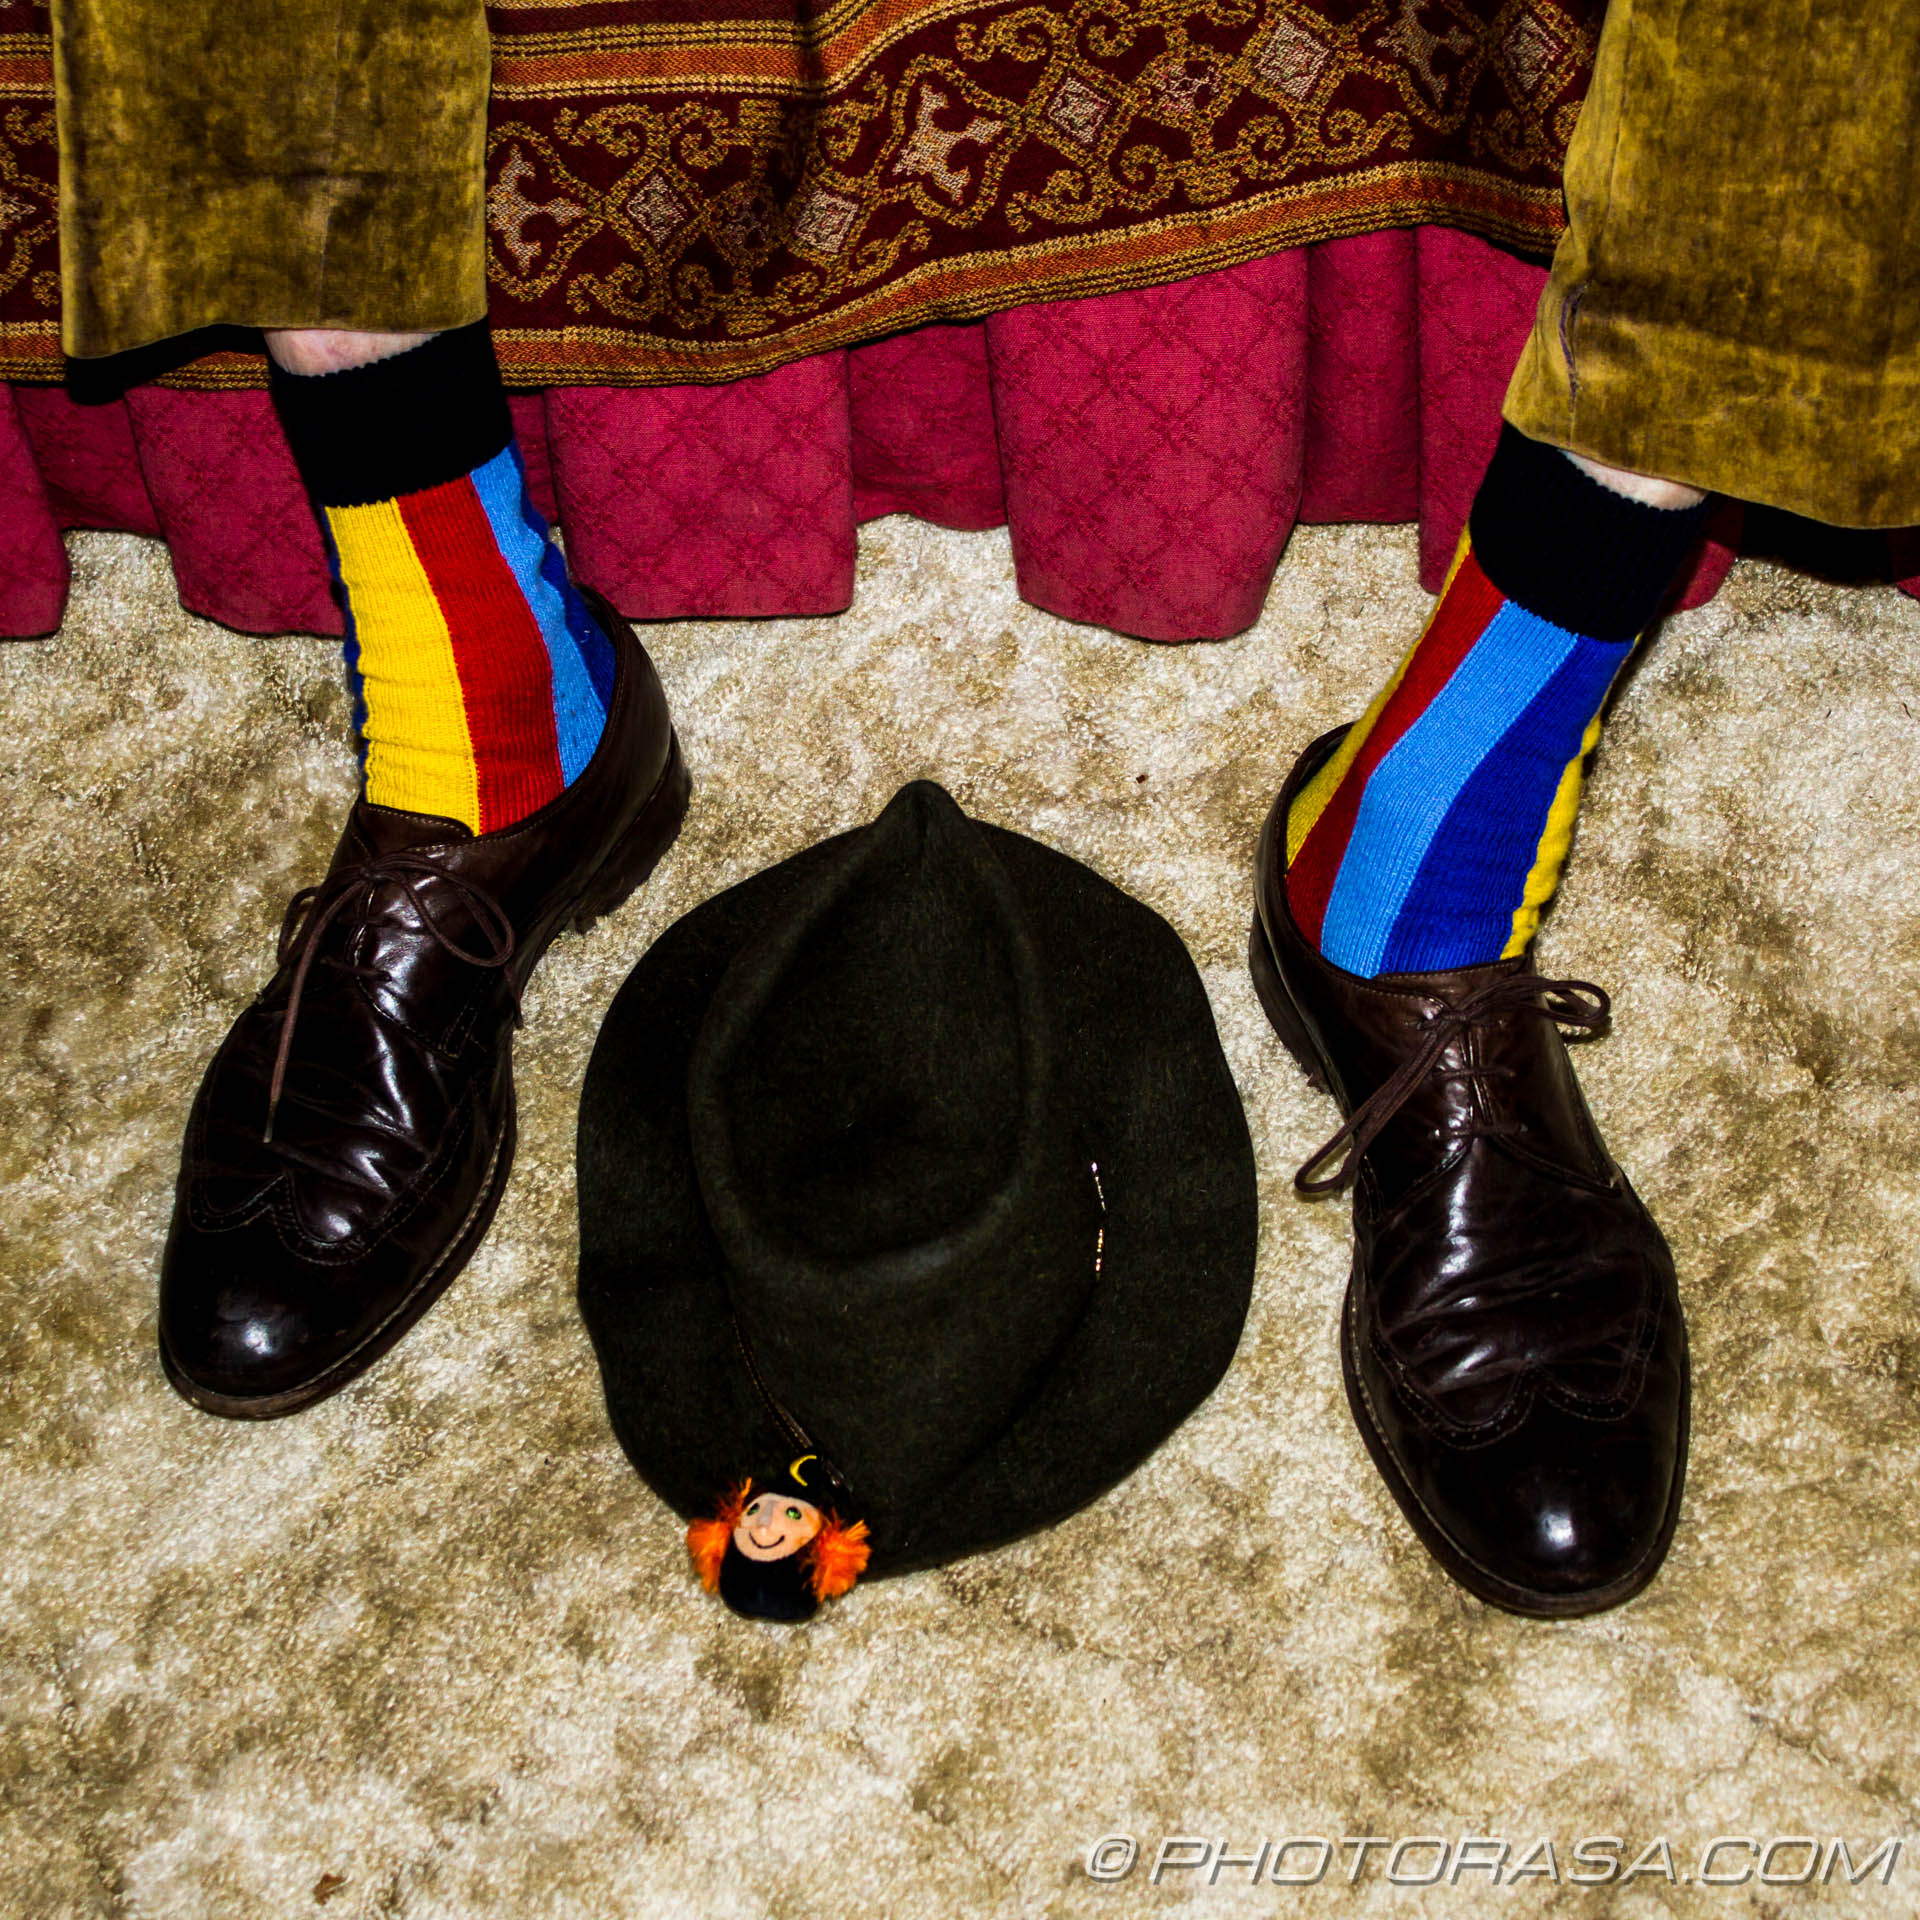 brogues, colorful stripey socks and a hat